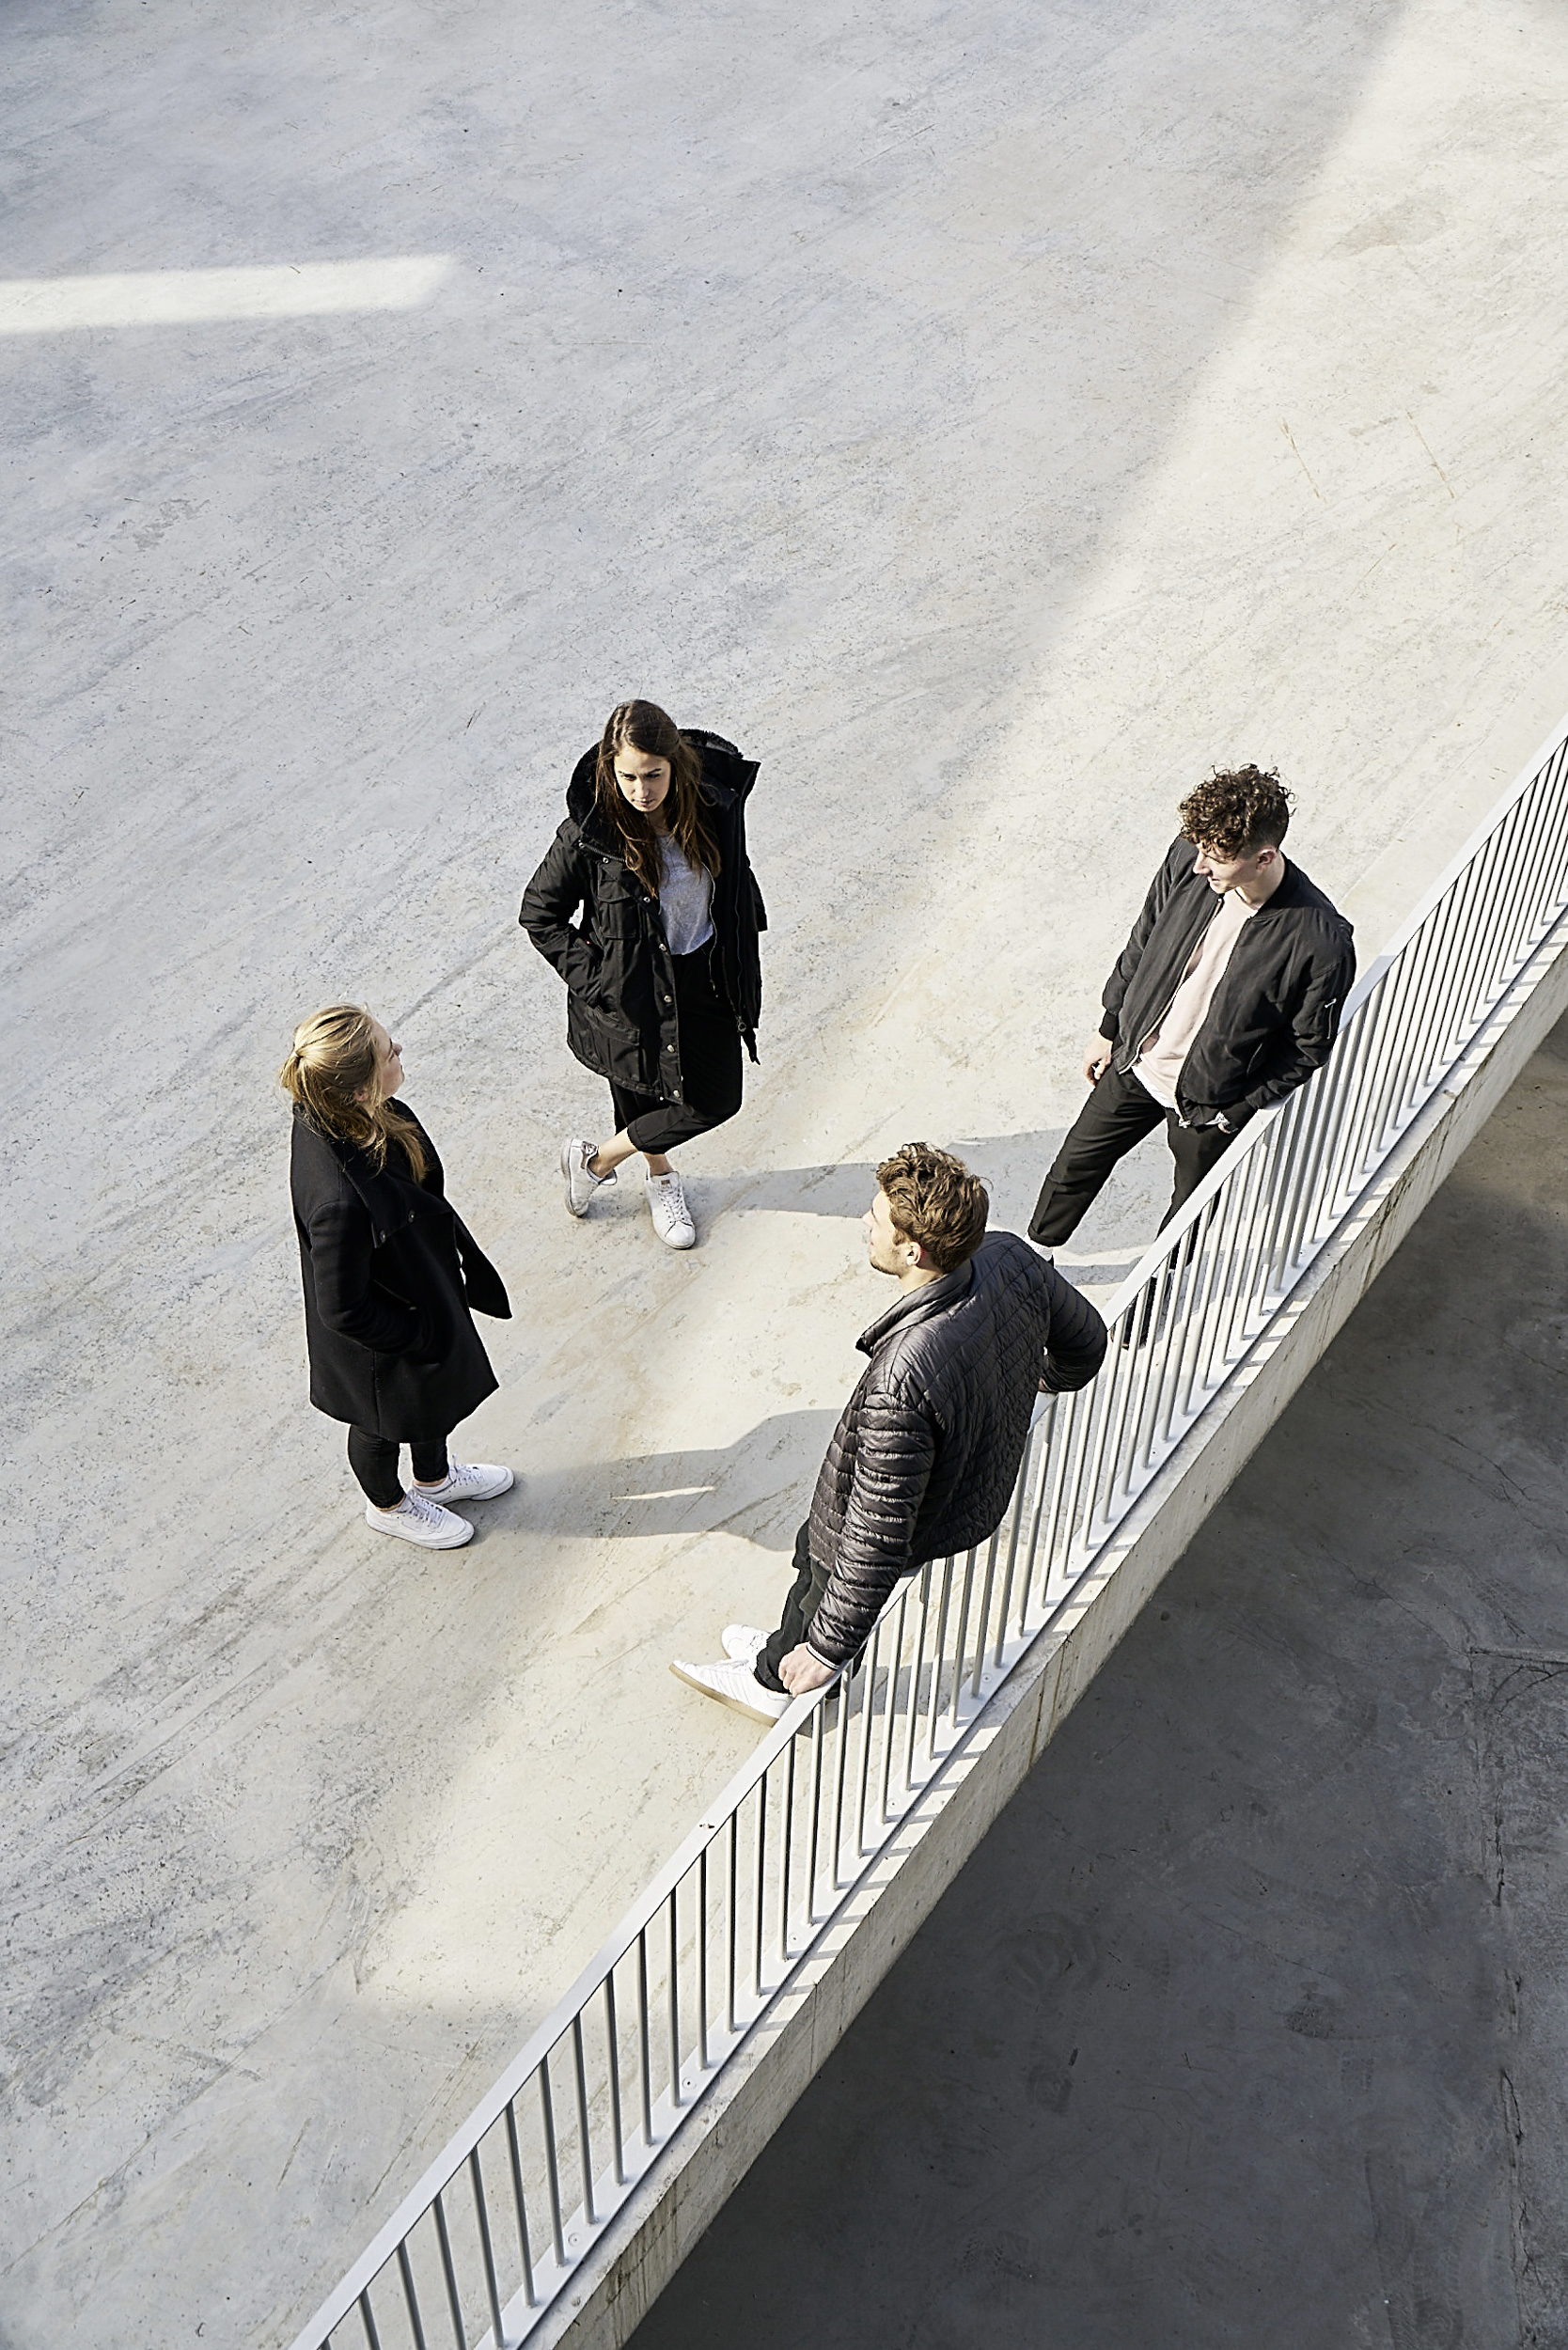 christian_burmester_people_aknds_tda_05